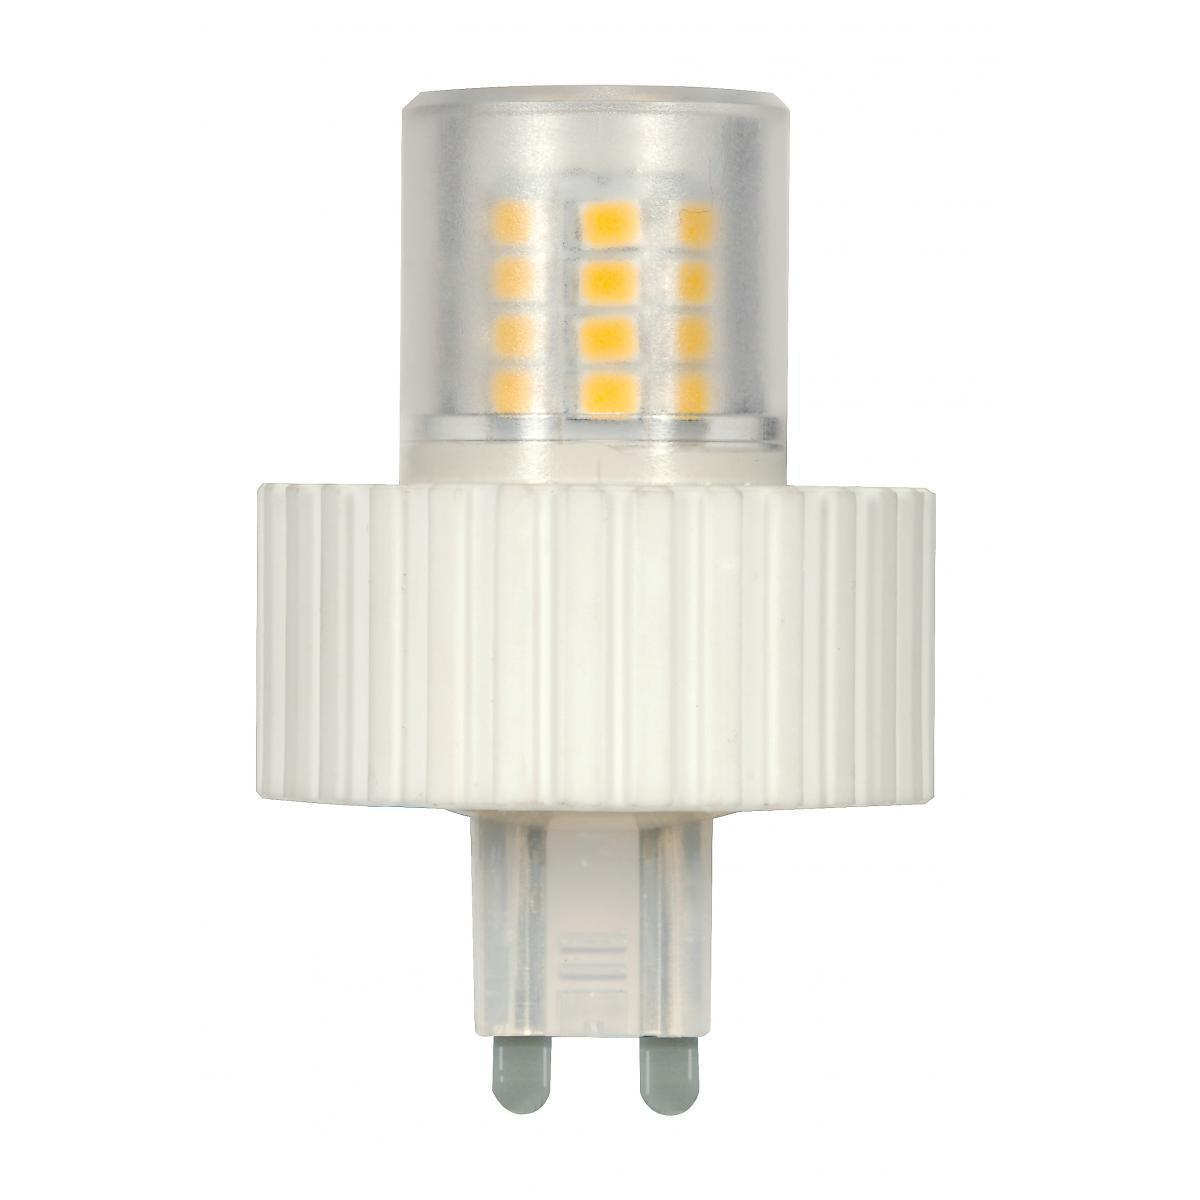 SATCO 5W LED T4 Replacemnet Bulb - G9 Base - 360' Beam Sp...